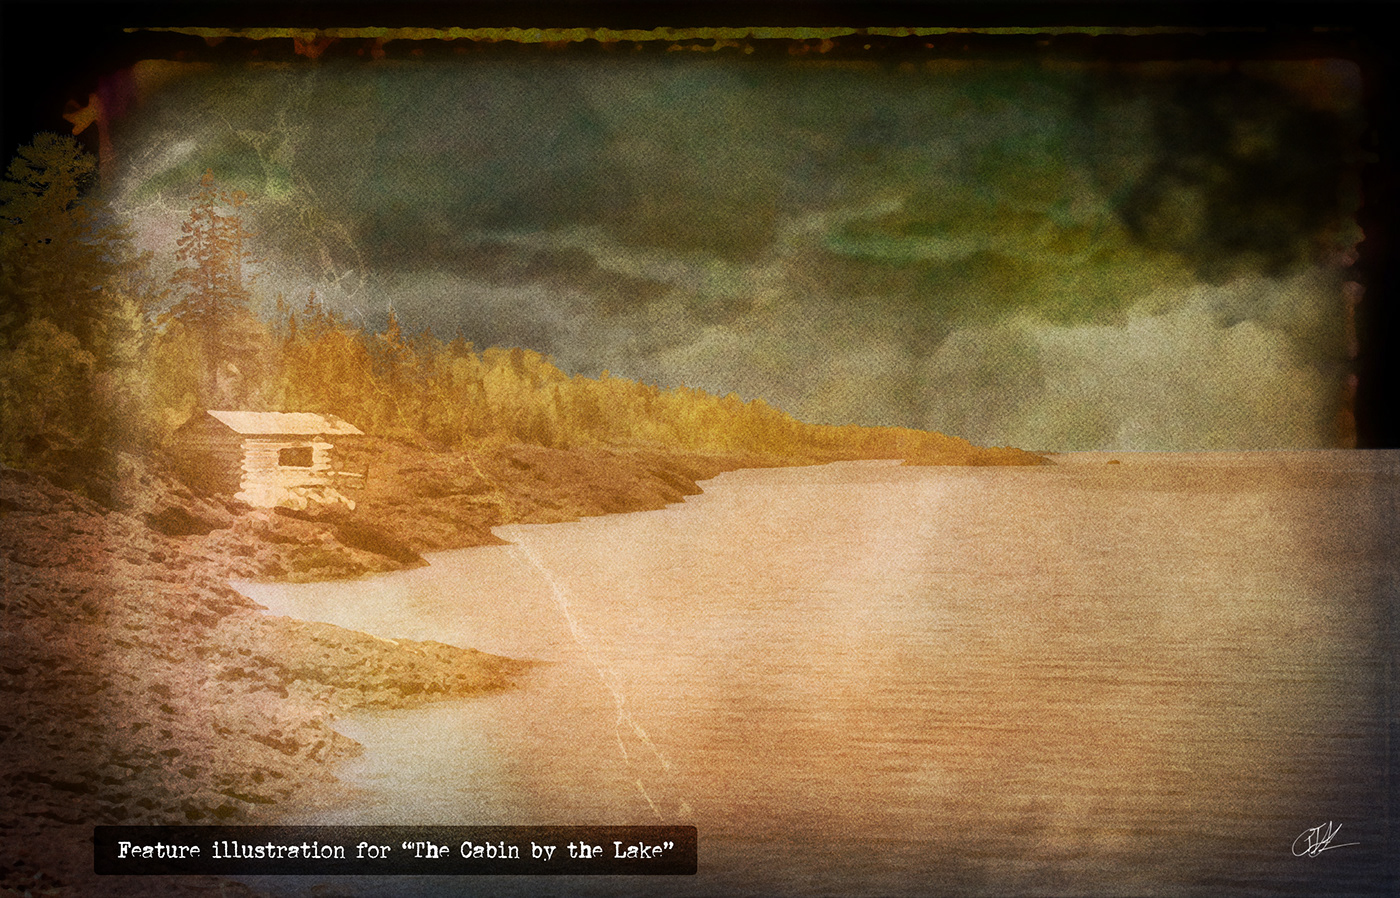 A cabin on the lake shore with ghosts hovering on the horizon.